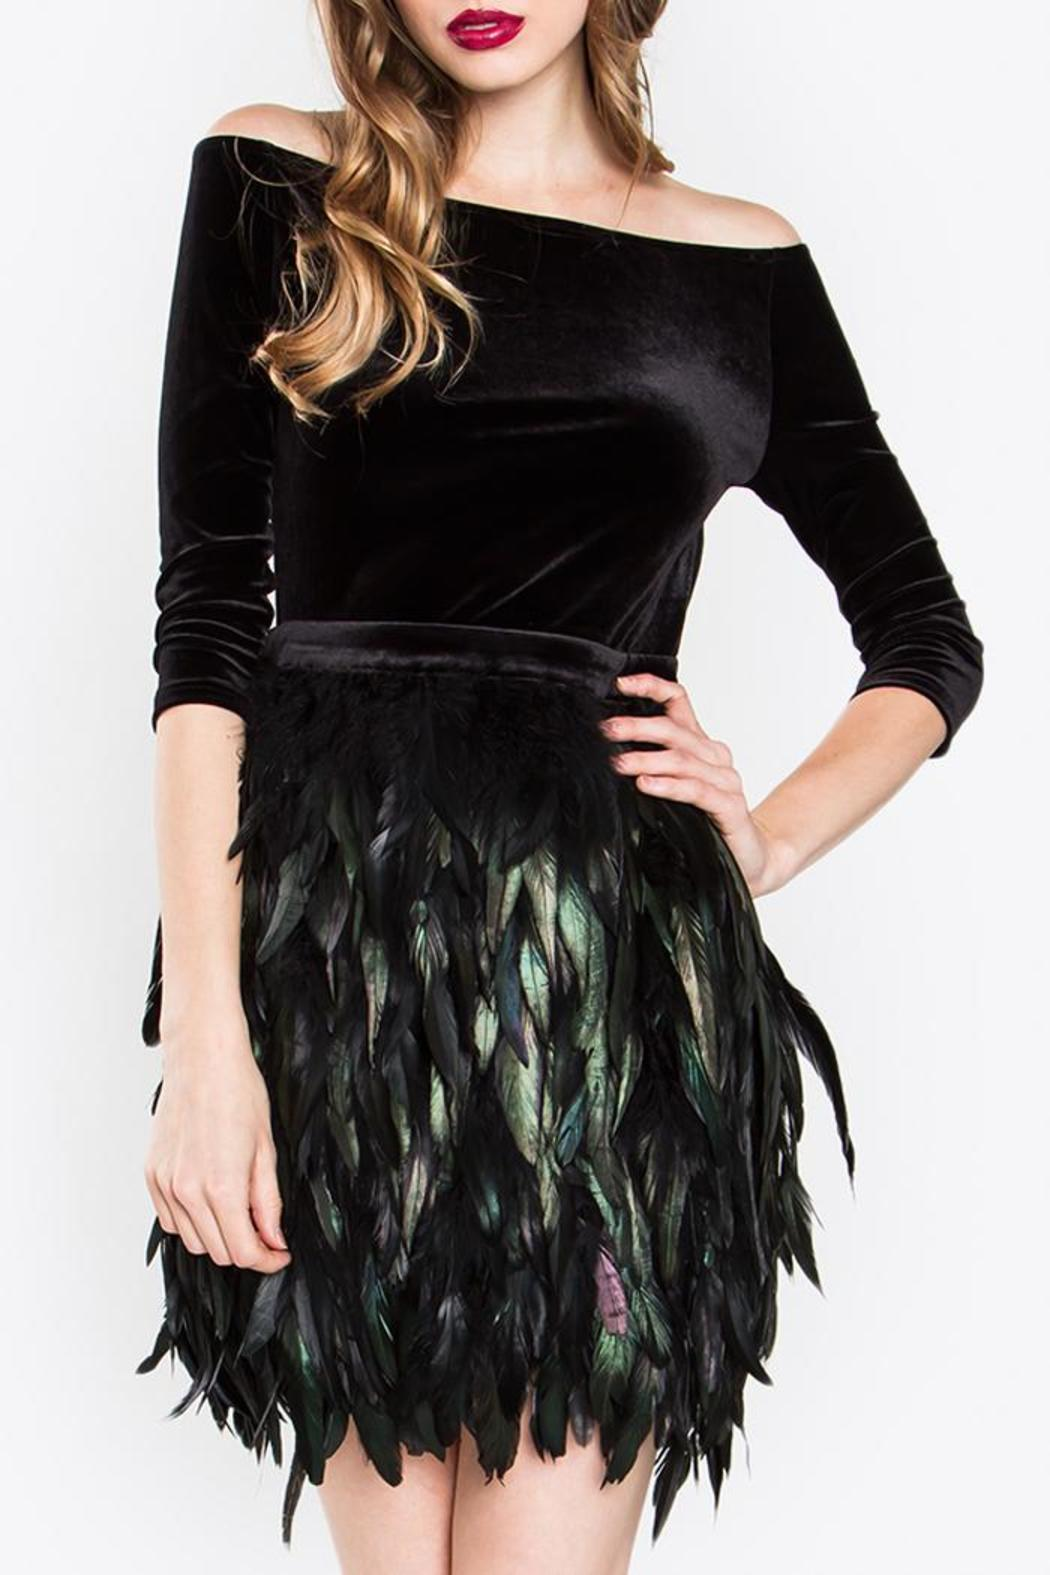 Sugar Lips Feather Dress From New York By Luna Shoptiques